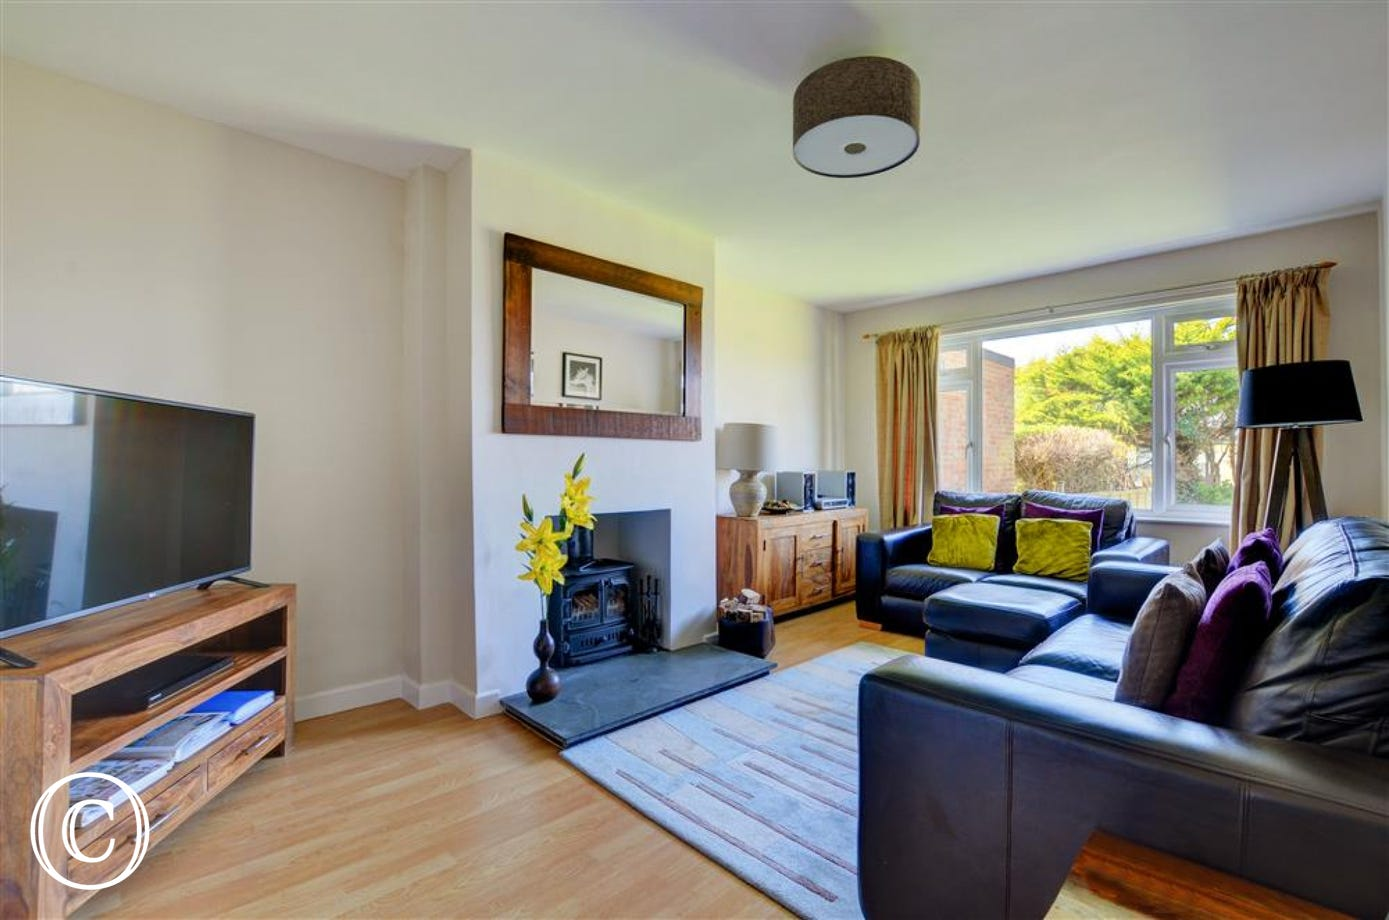 Wood laminate flooring and comfy leather sofas round a slate fireplace make this a cosy and welcoming sitting room